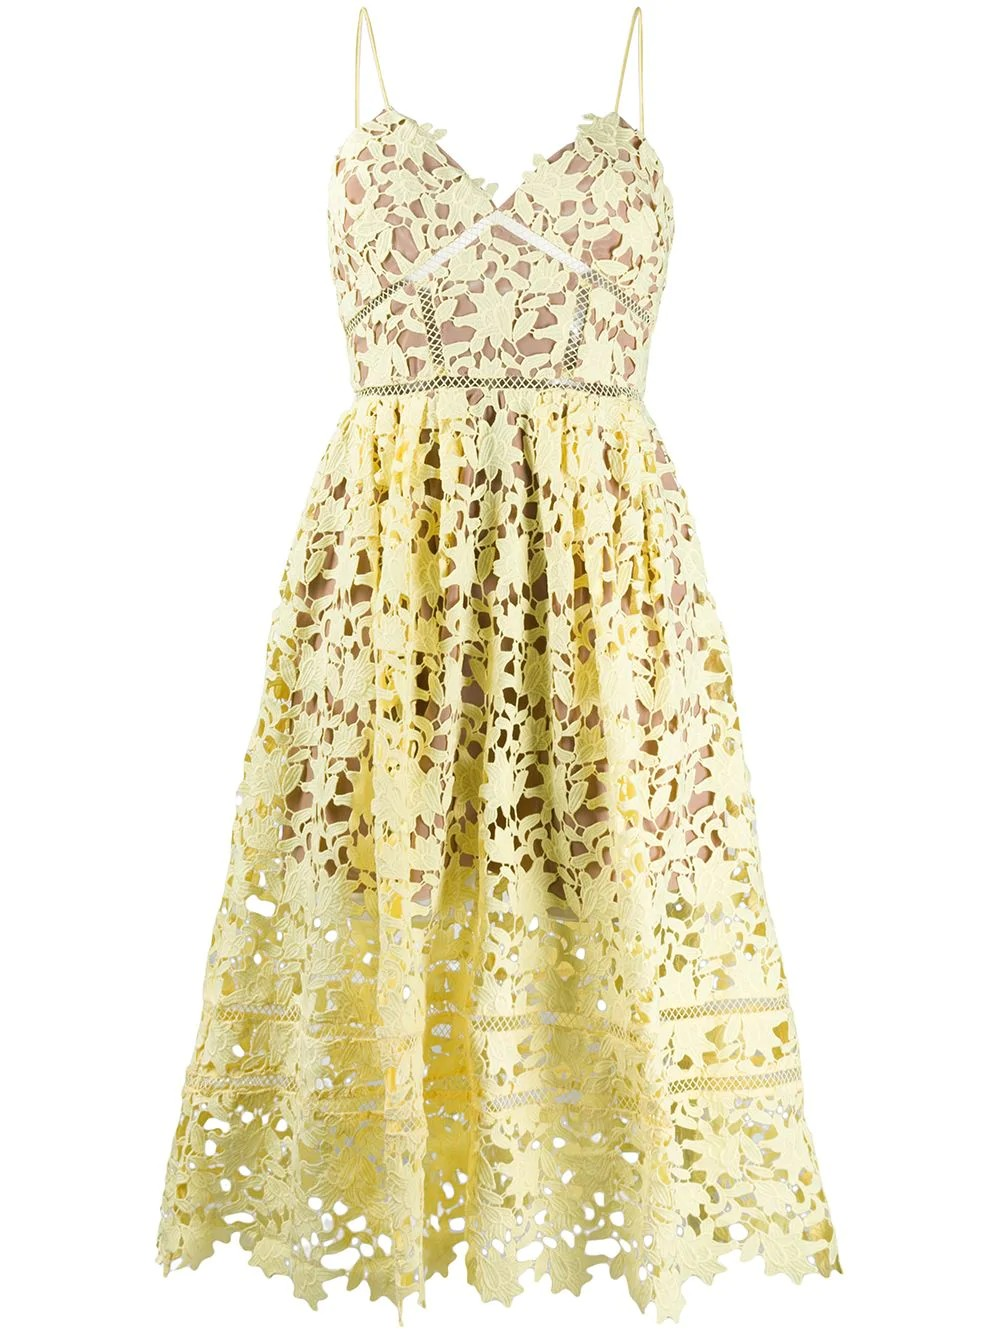 YELLOW AZAELEA DRESS